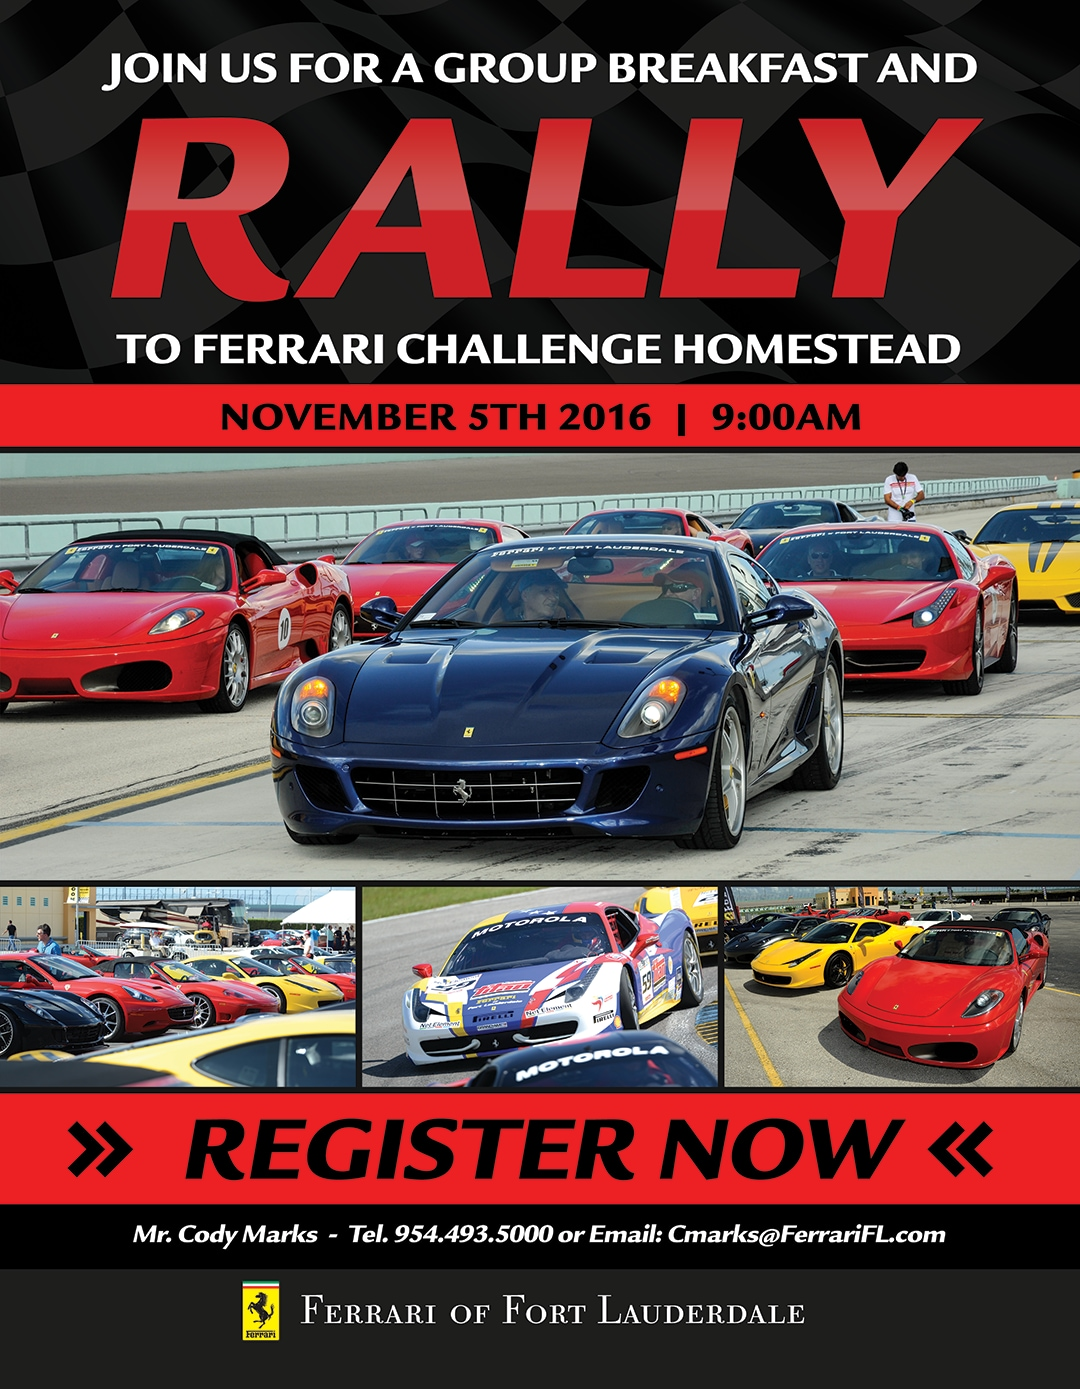 Rally to Ferrari Challenge Homestead FL 2016